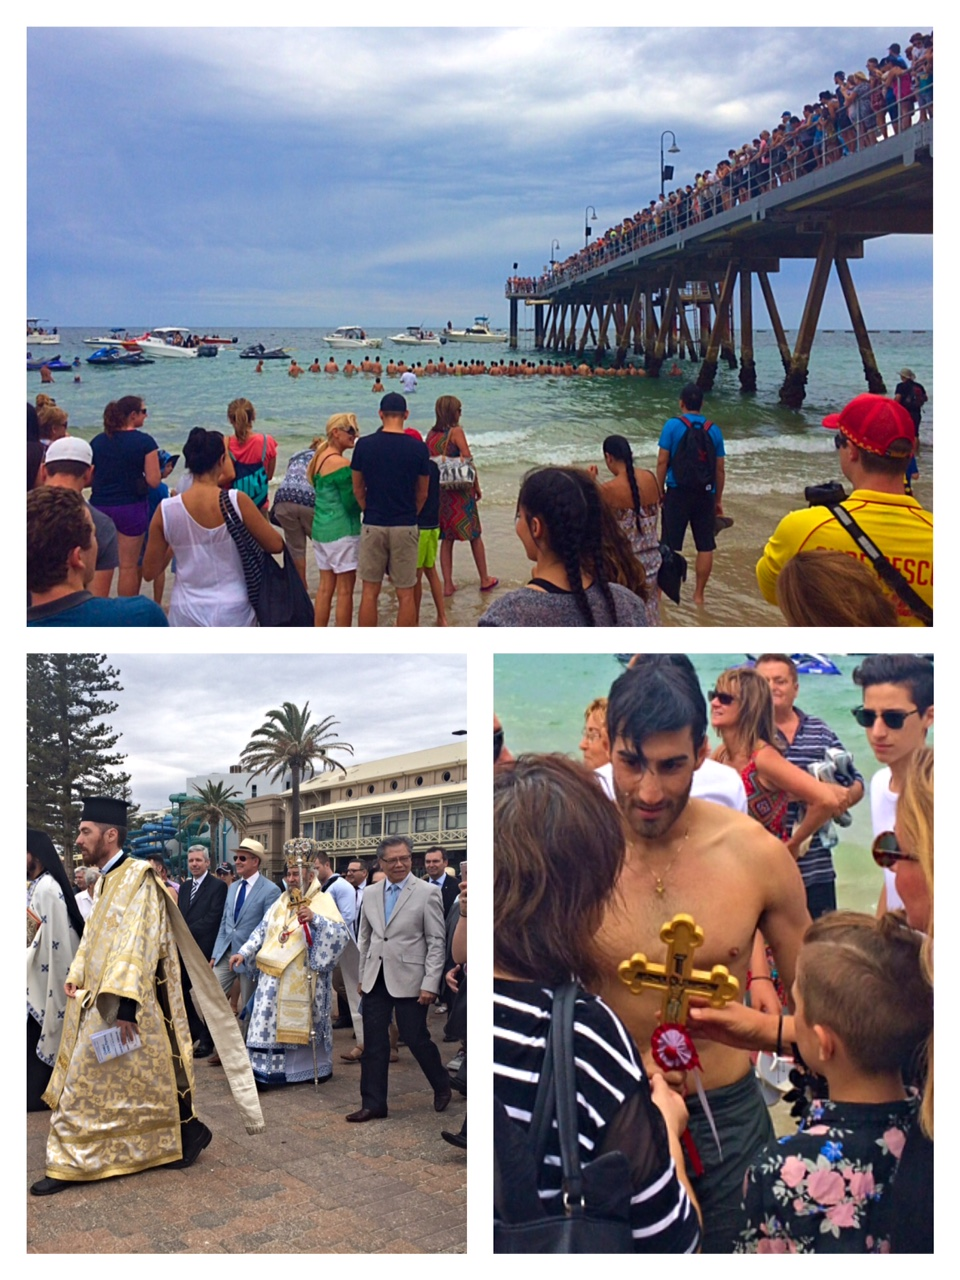 Greek Orthodox blessing of the waters, Glenelg